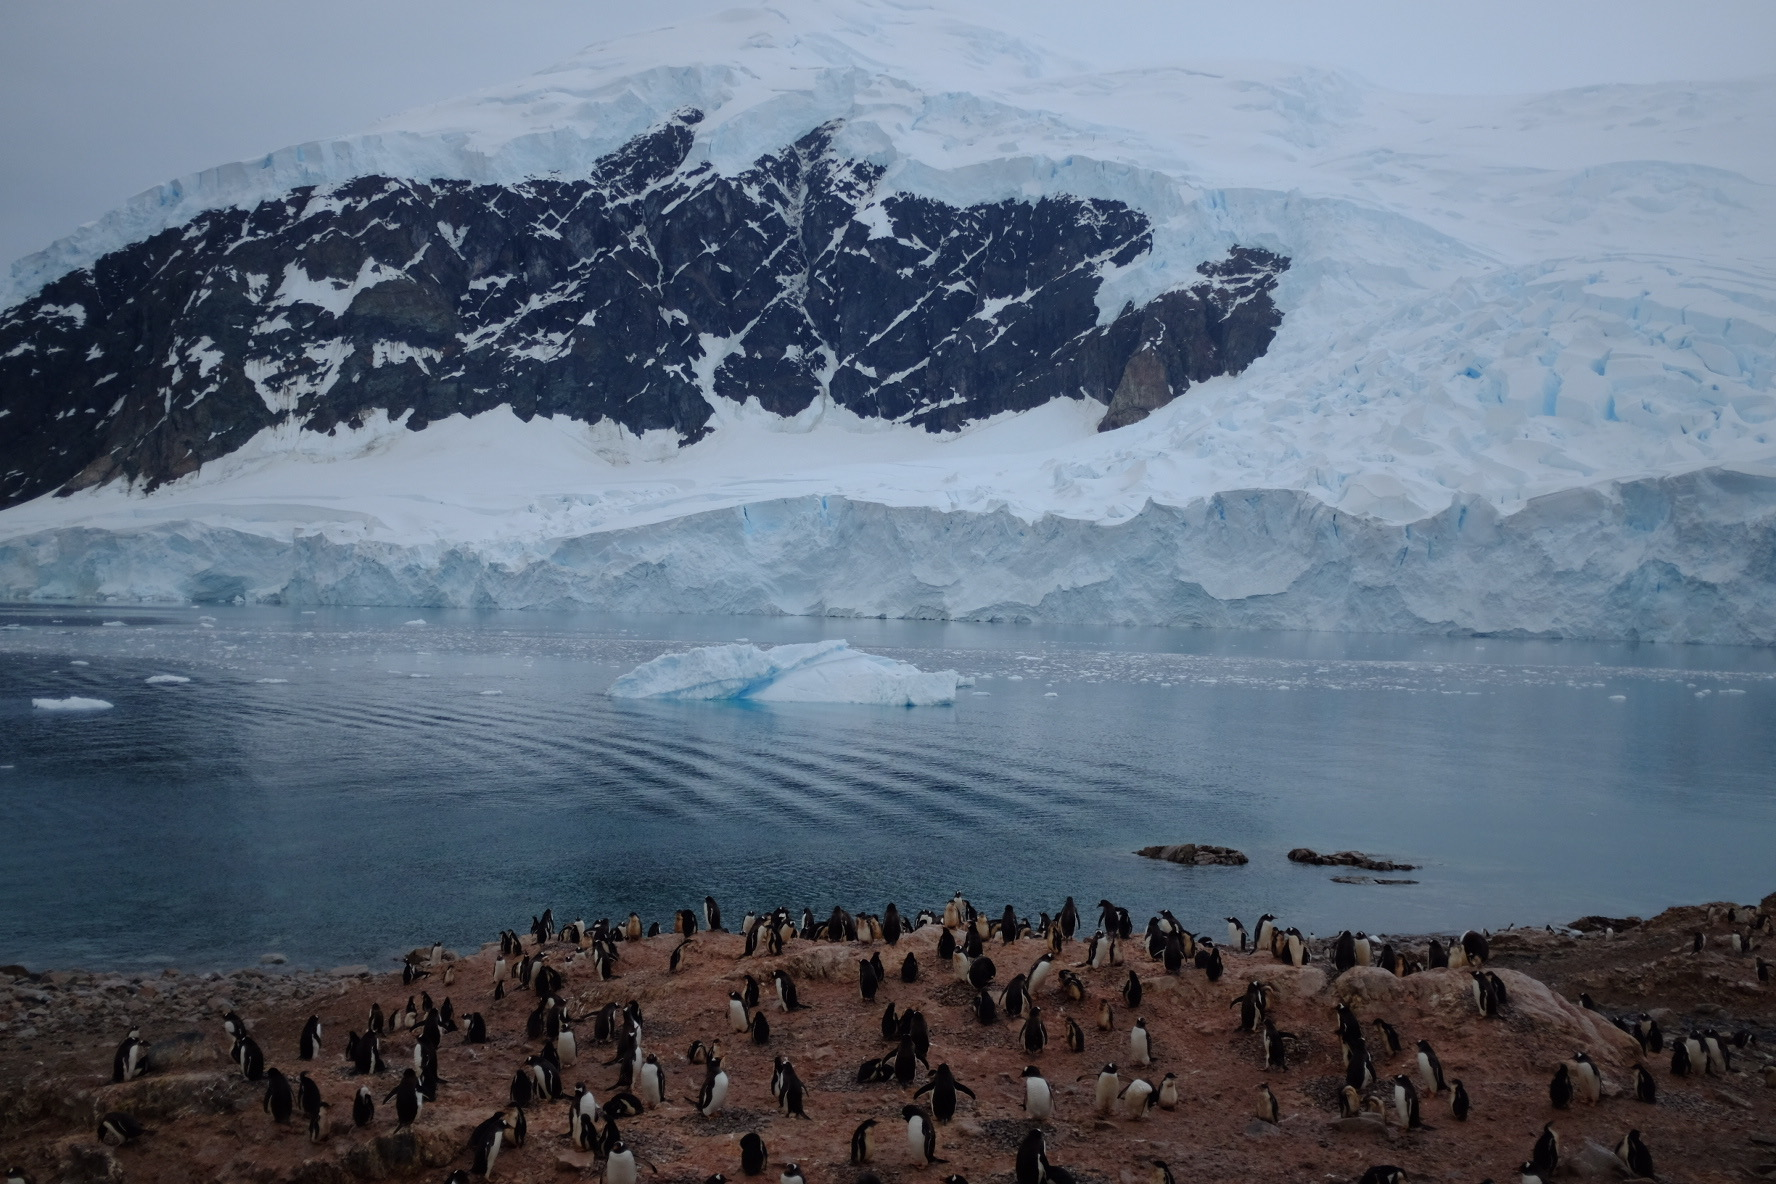 A colony of Gentoo penguins with three month old chicks living in Neko Harbour on the Antarctic Peninsula. Photo: Alicia-Rae Olafsson